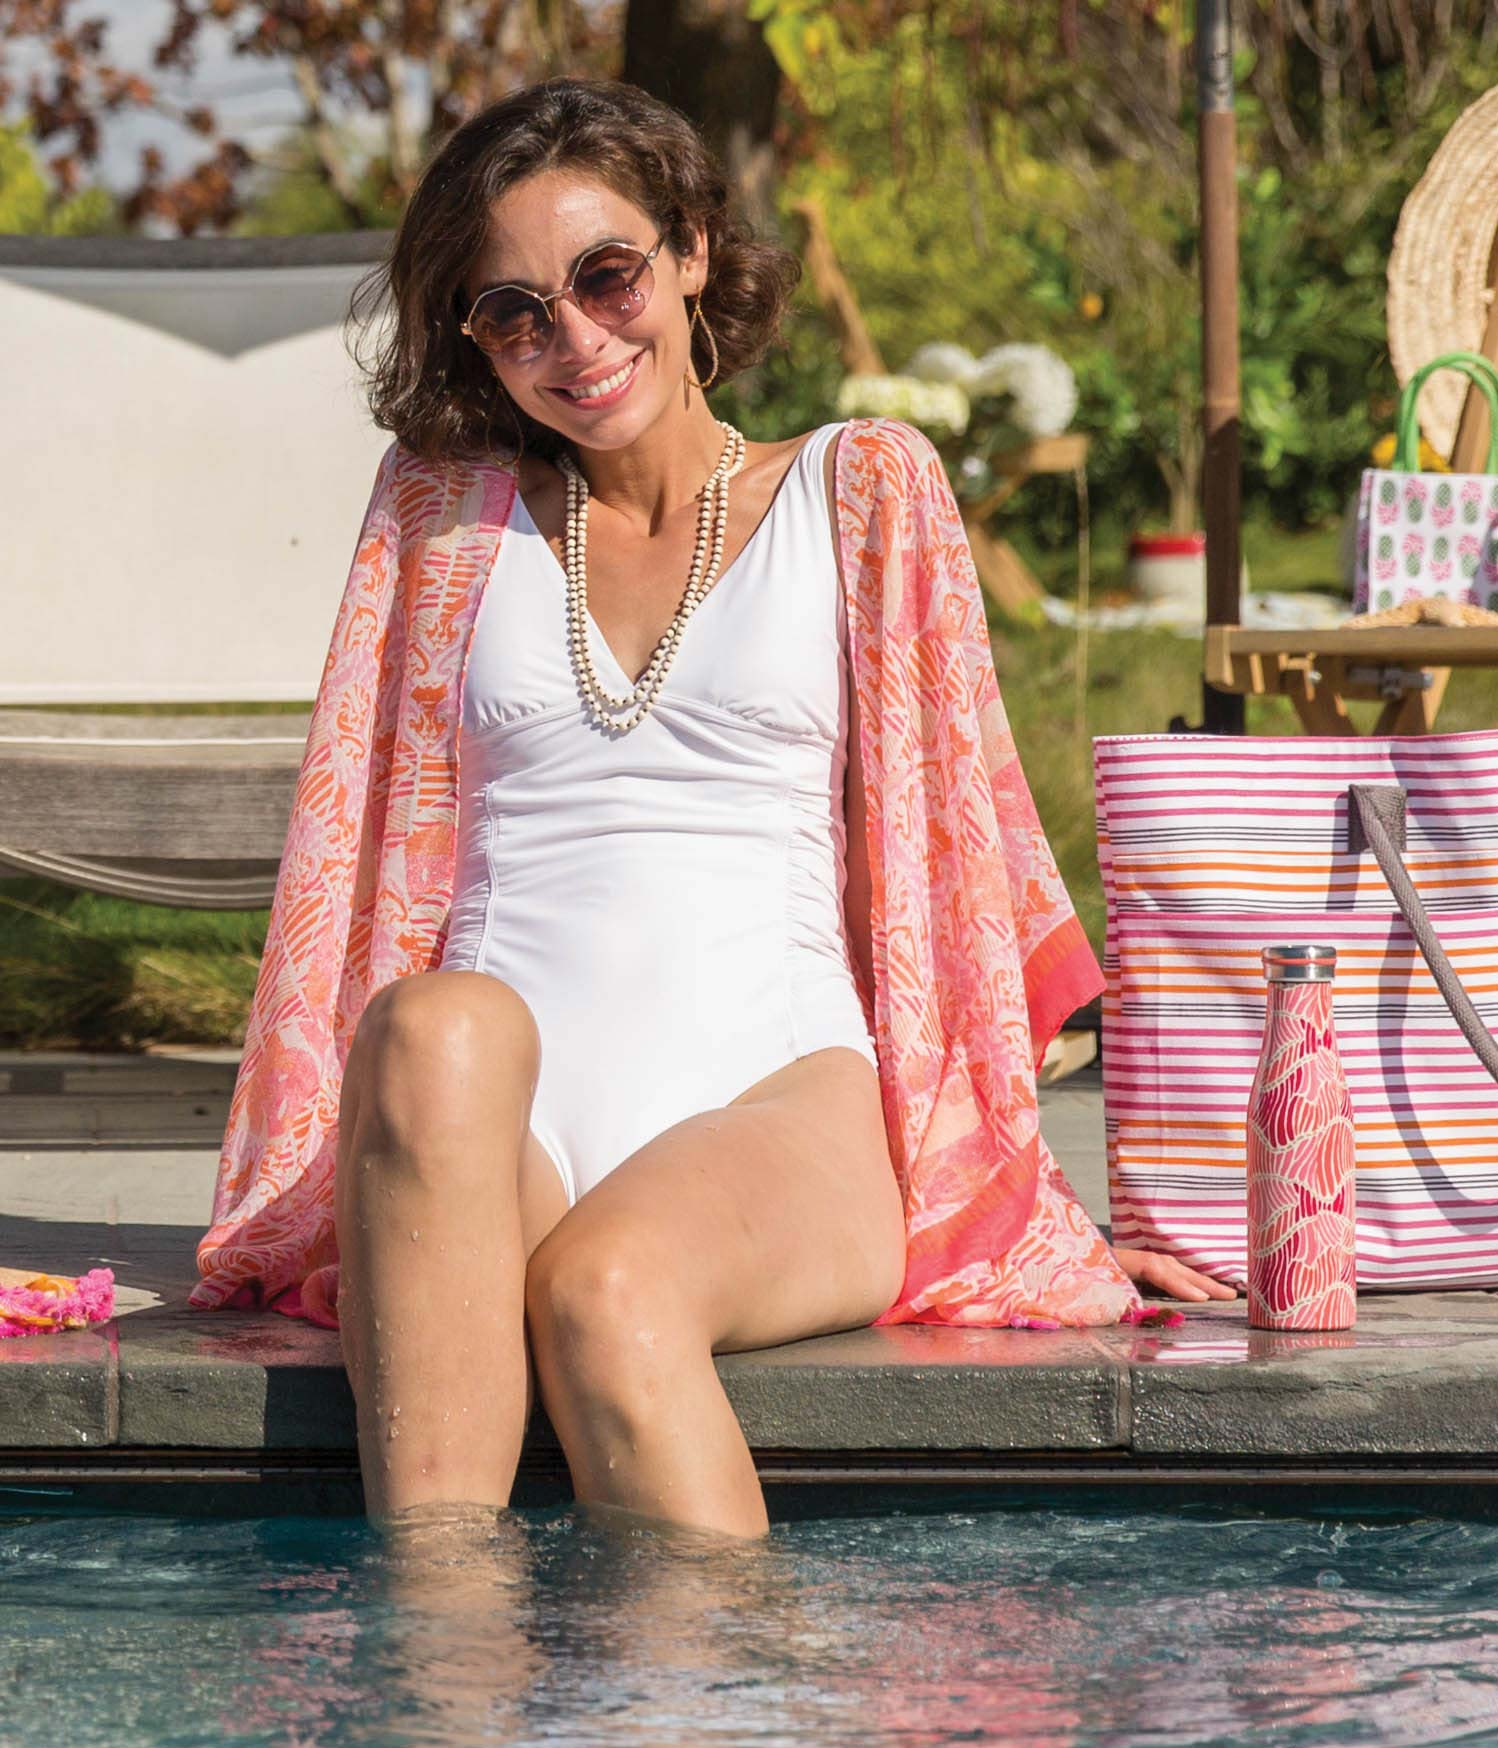 Use our lightweight summer kimono as a bathingsuit cover up! Perfect for the pool and the beach.